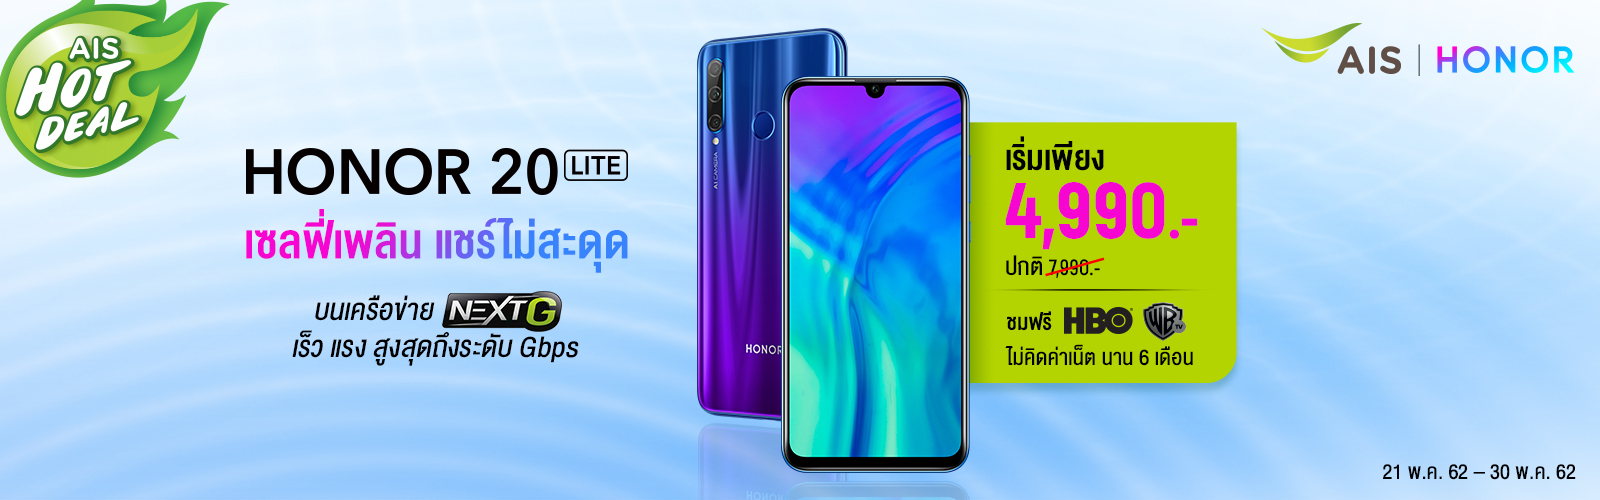 Honor 20 Lite_TH